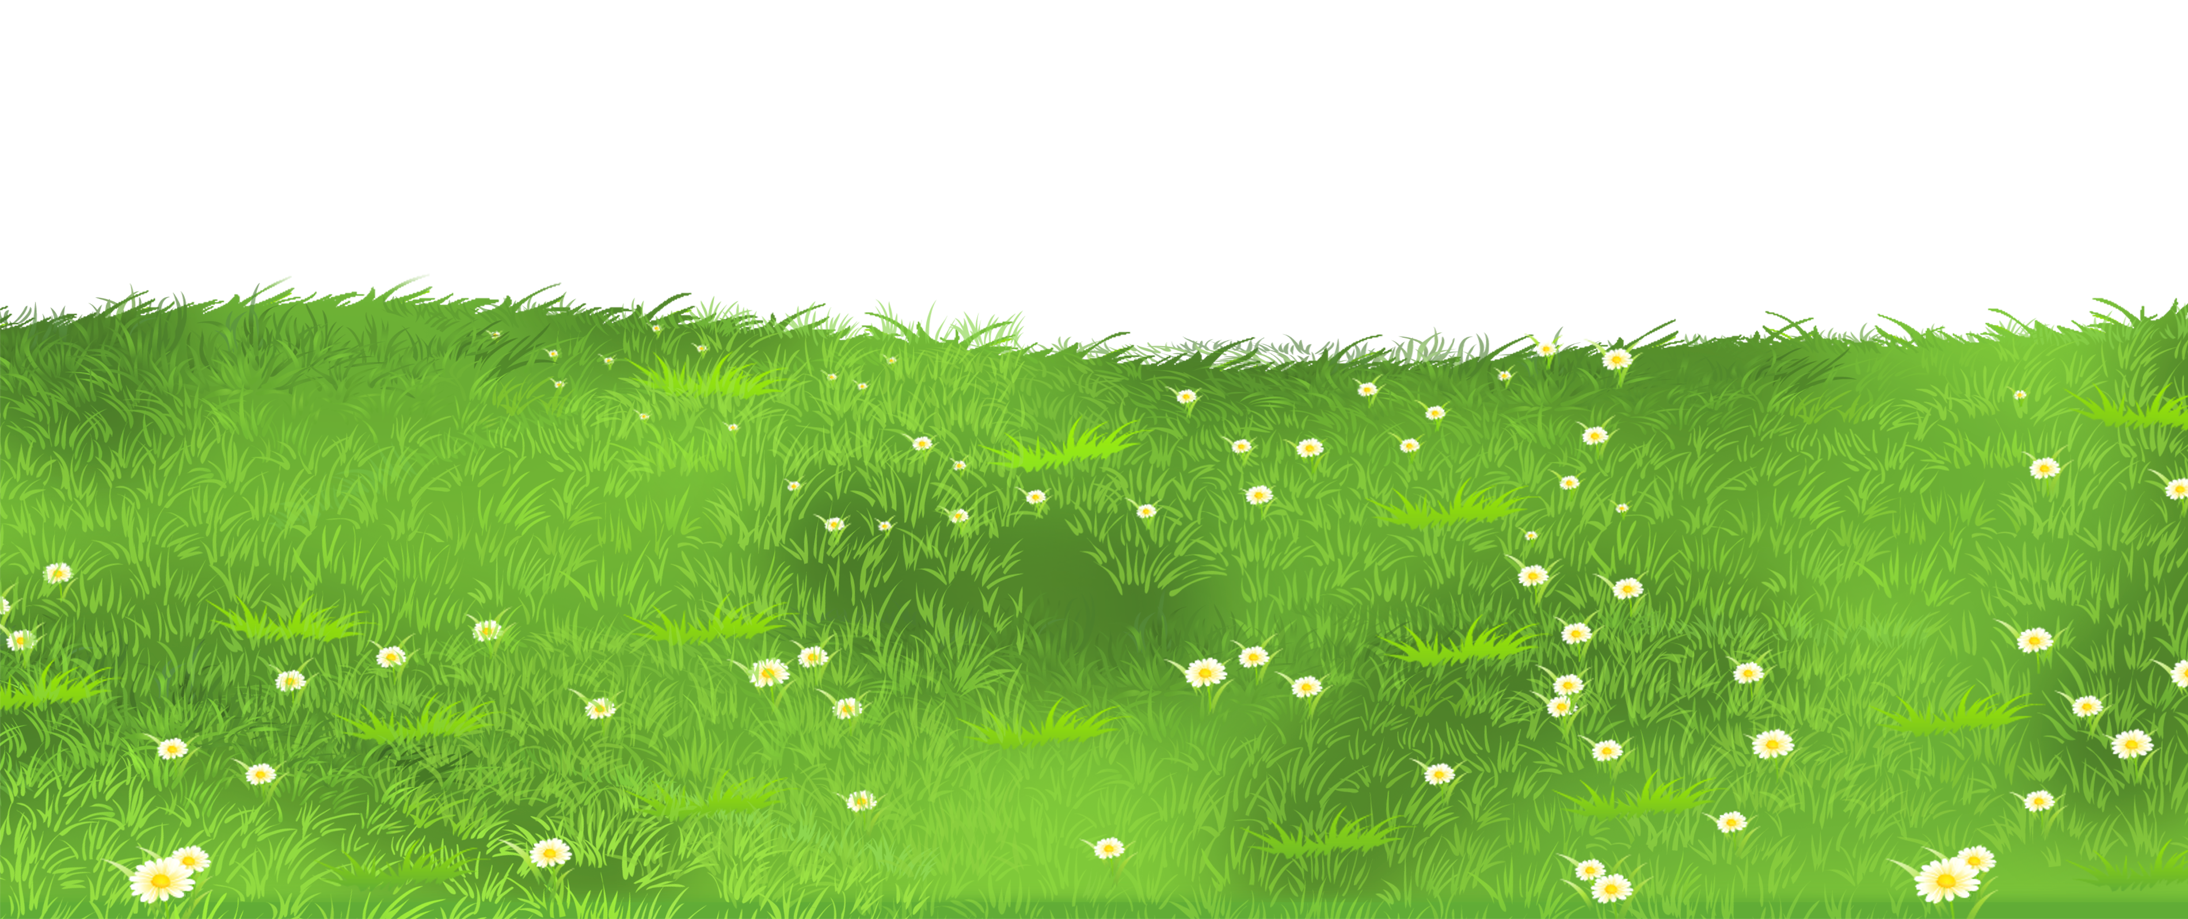 Free Grass Clip Art Pictures.